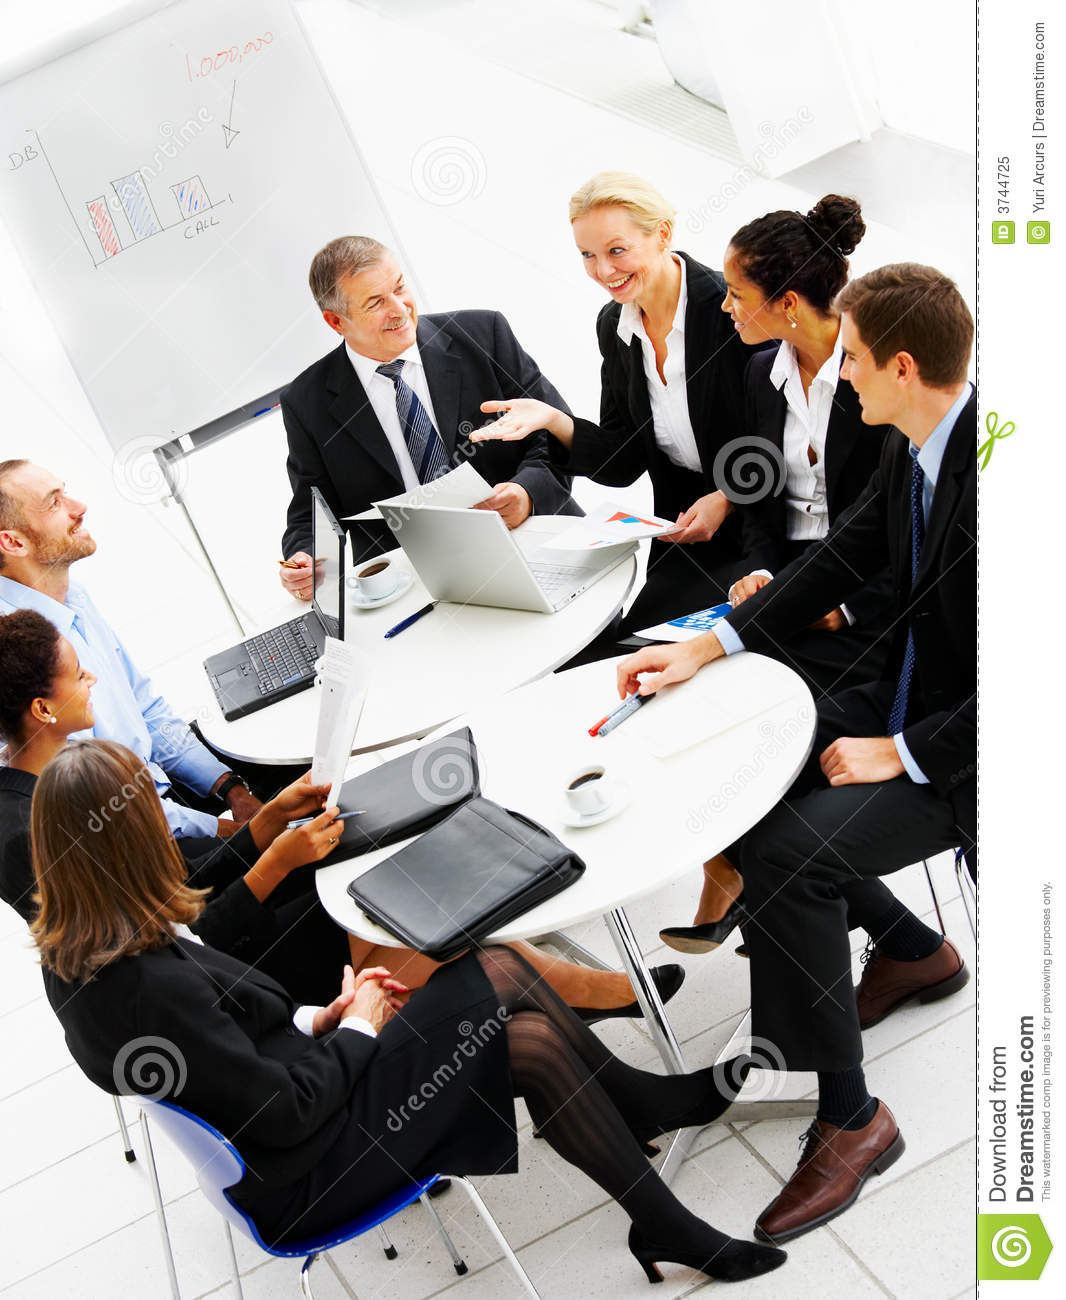 web site for meeting people What is the best chat website that i can meet new people   what is a good/popular chat website for meeting new friends chat websites to meet people .